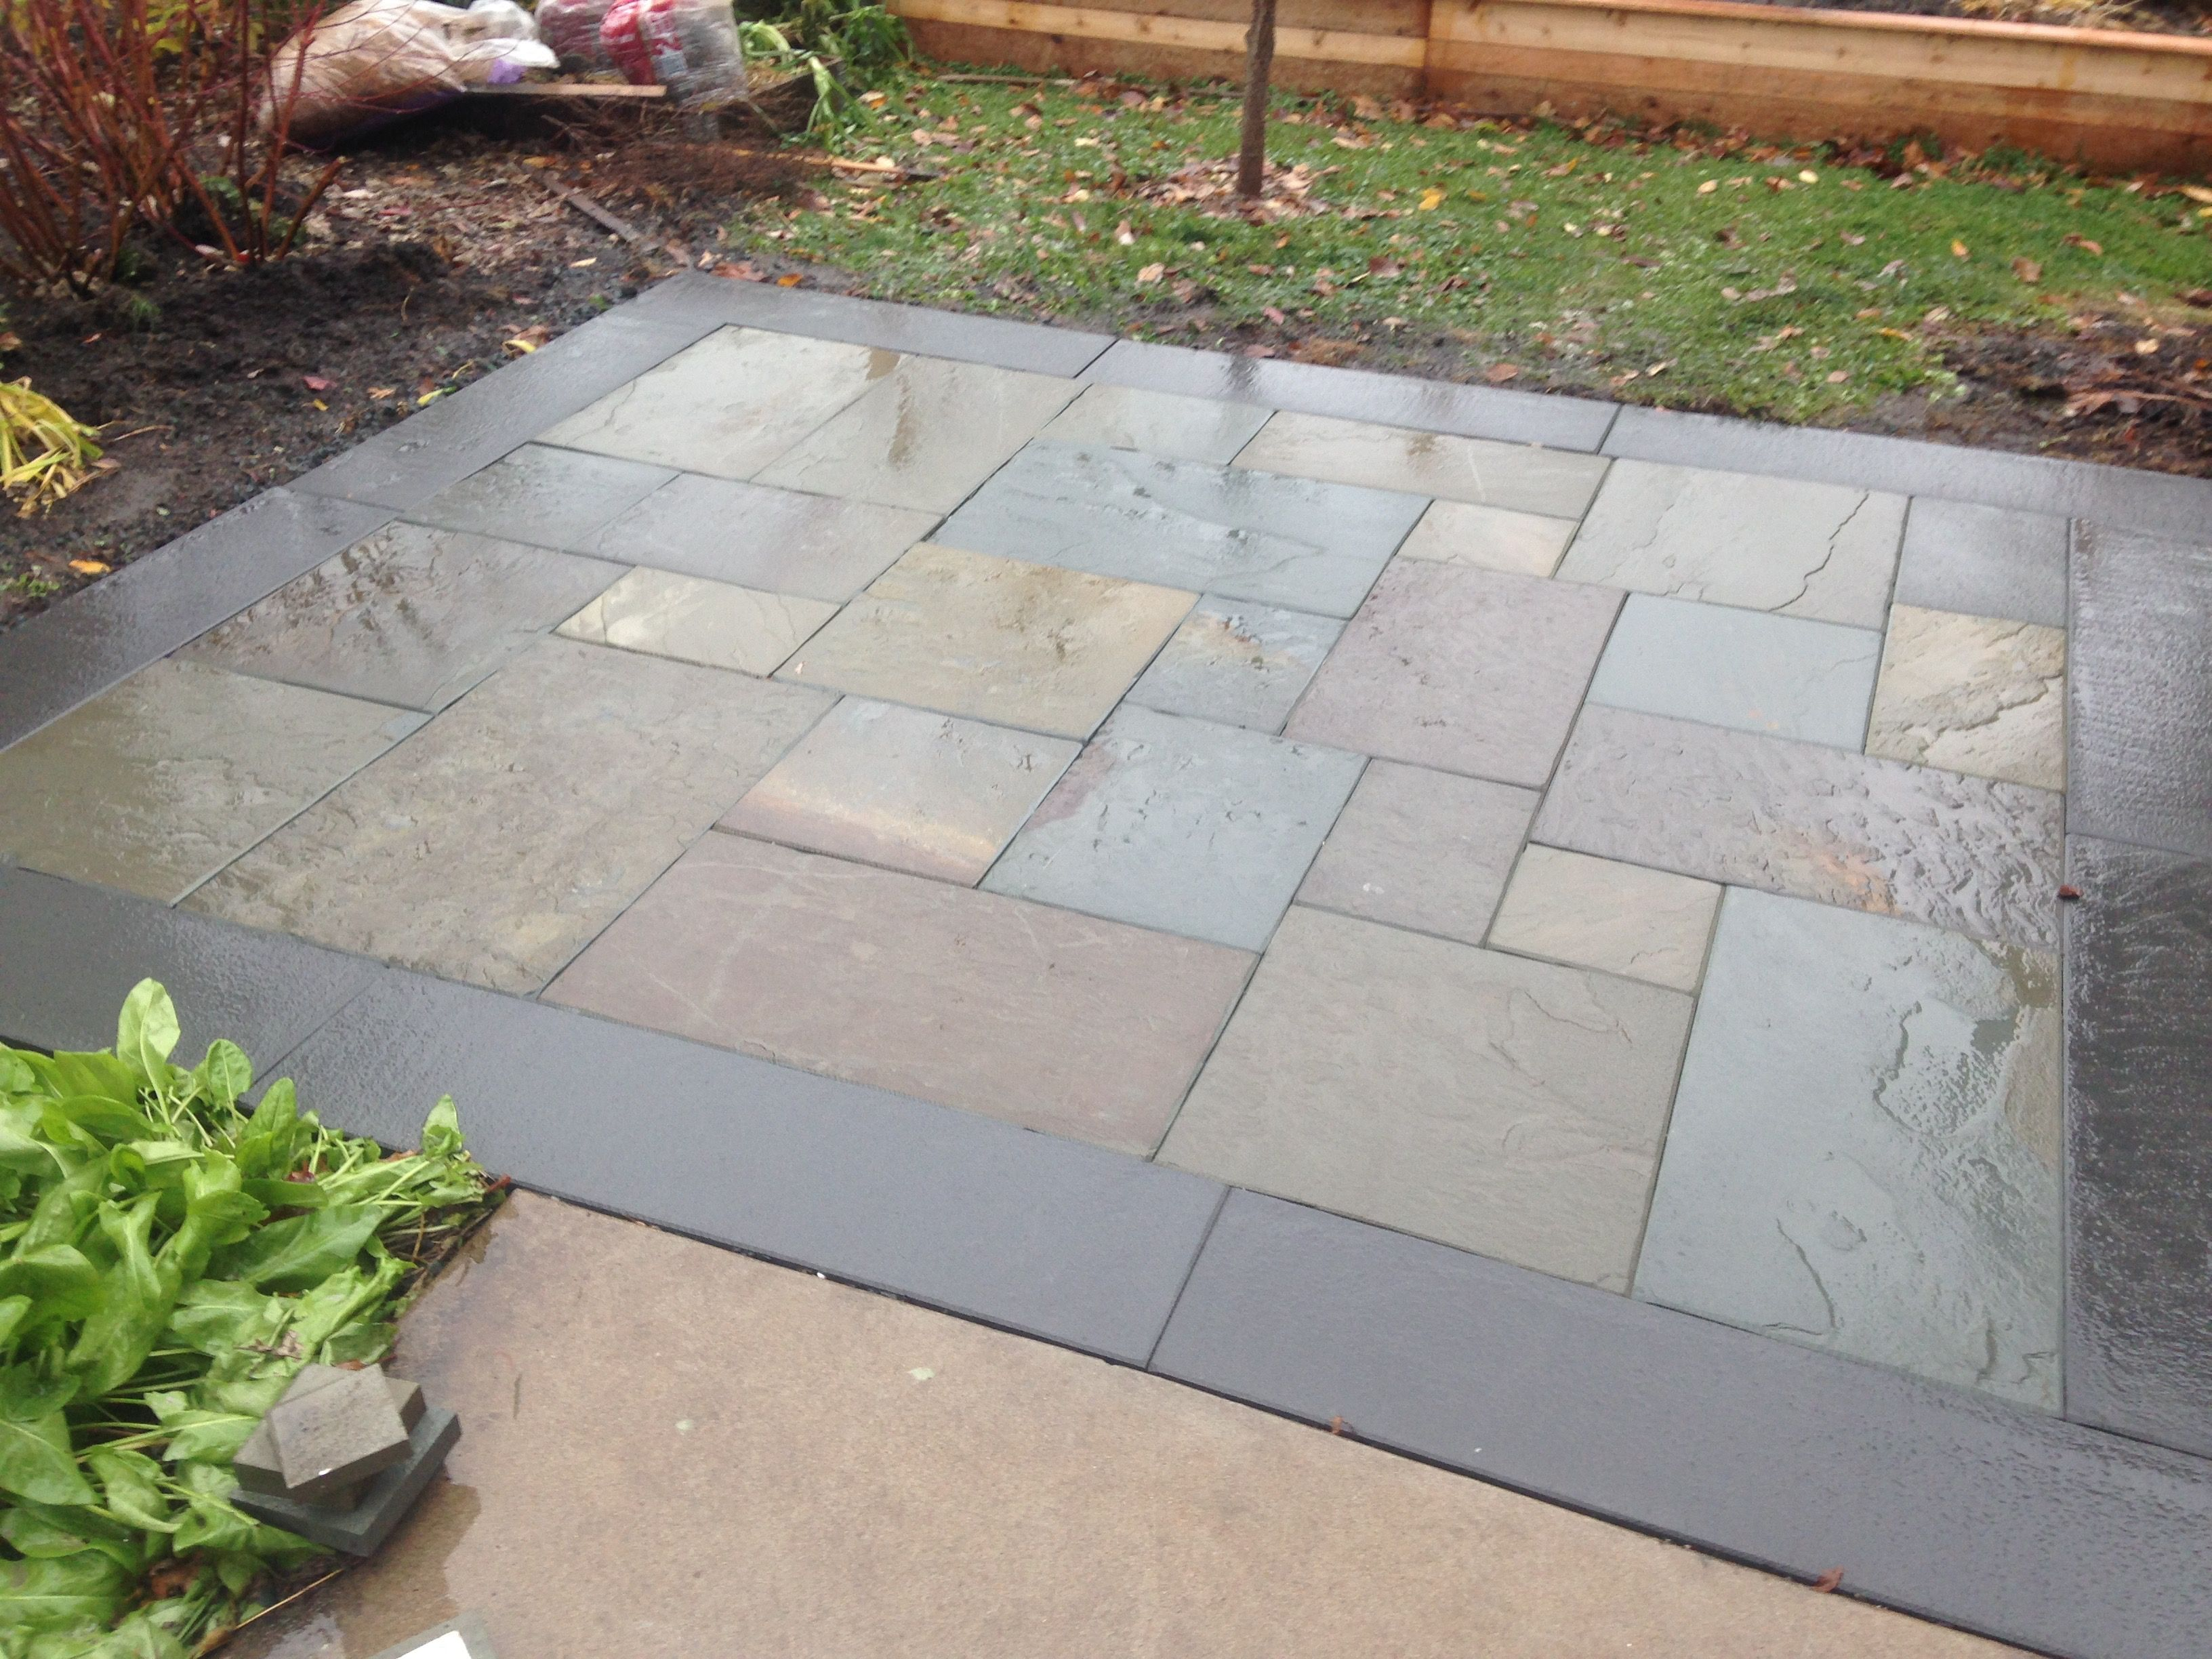 Full Color Bluestone Patio with Thermal Border